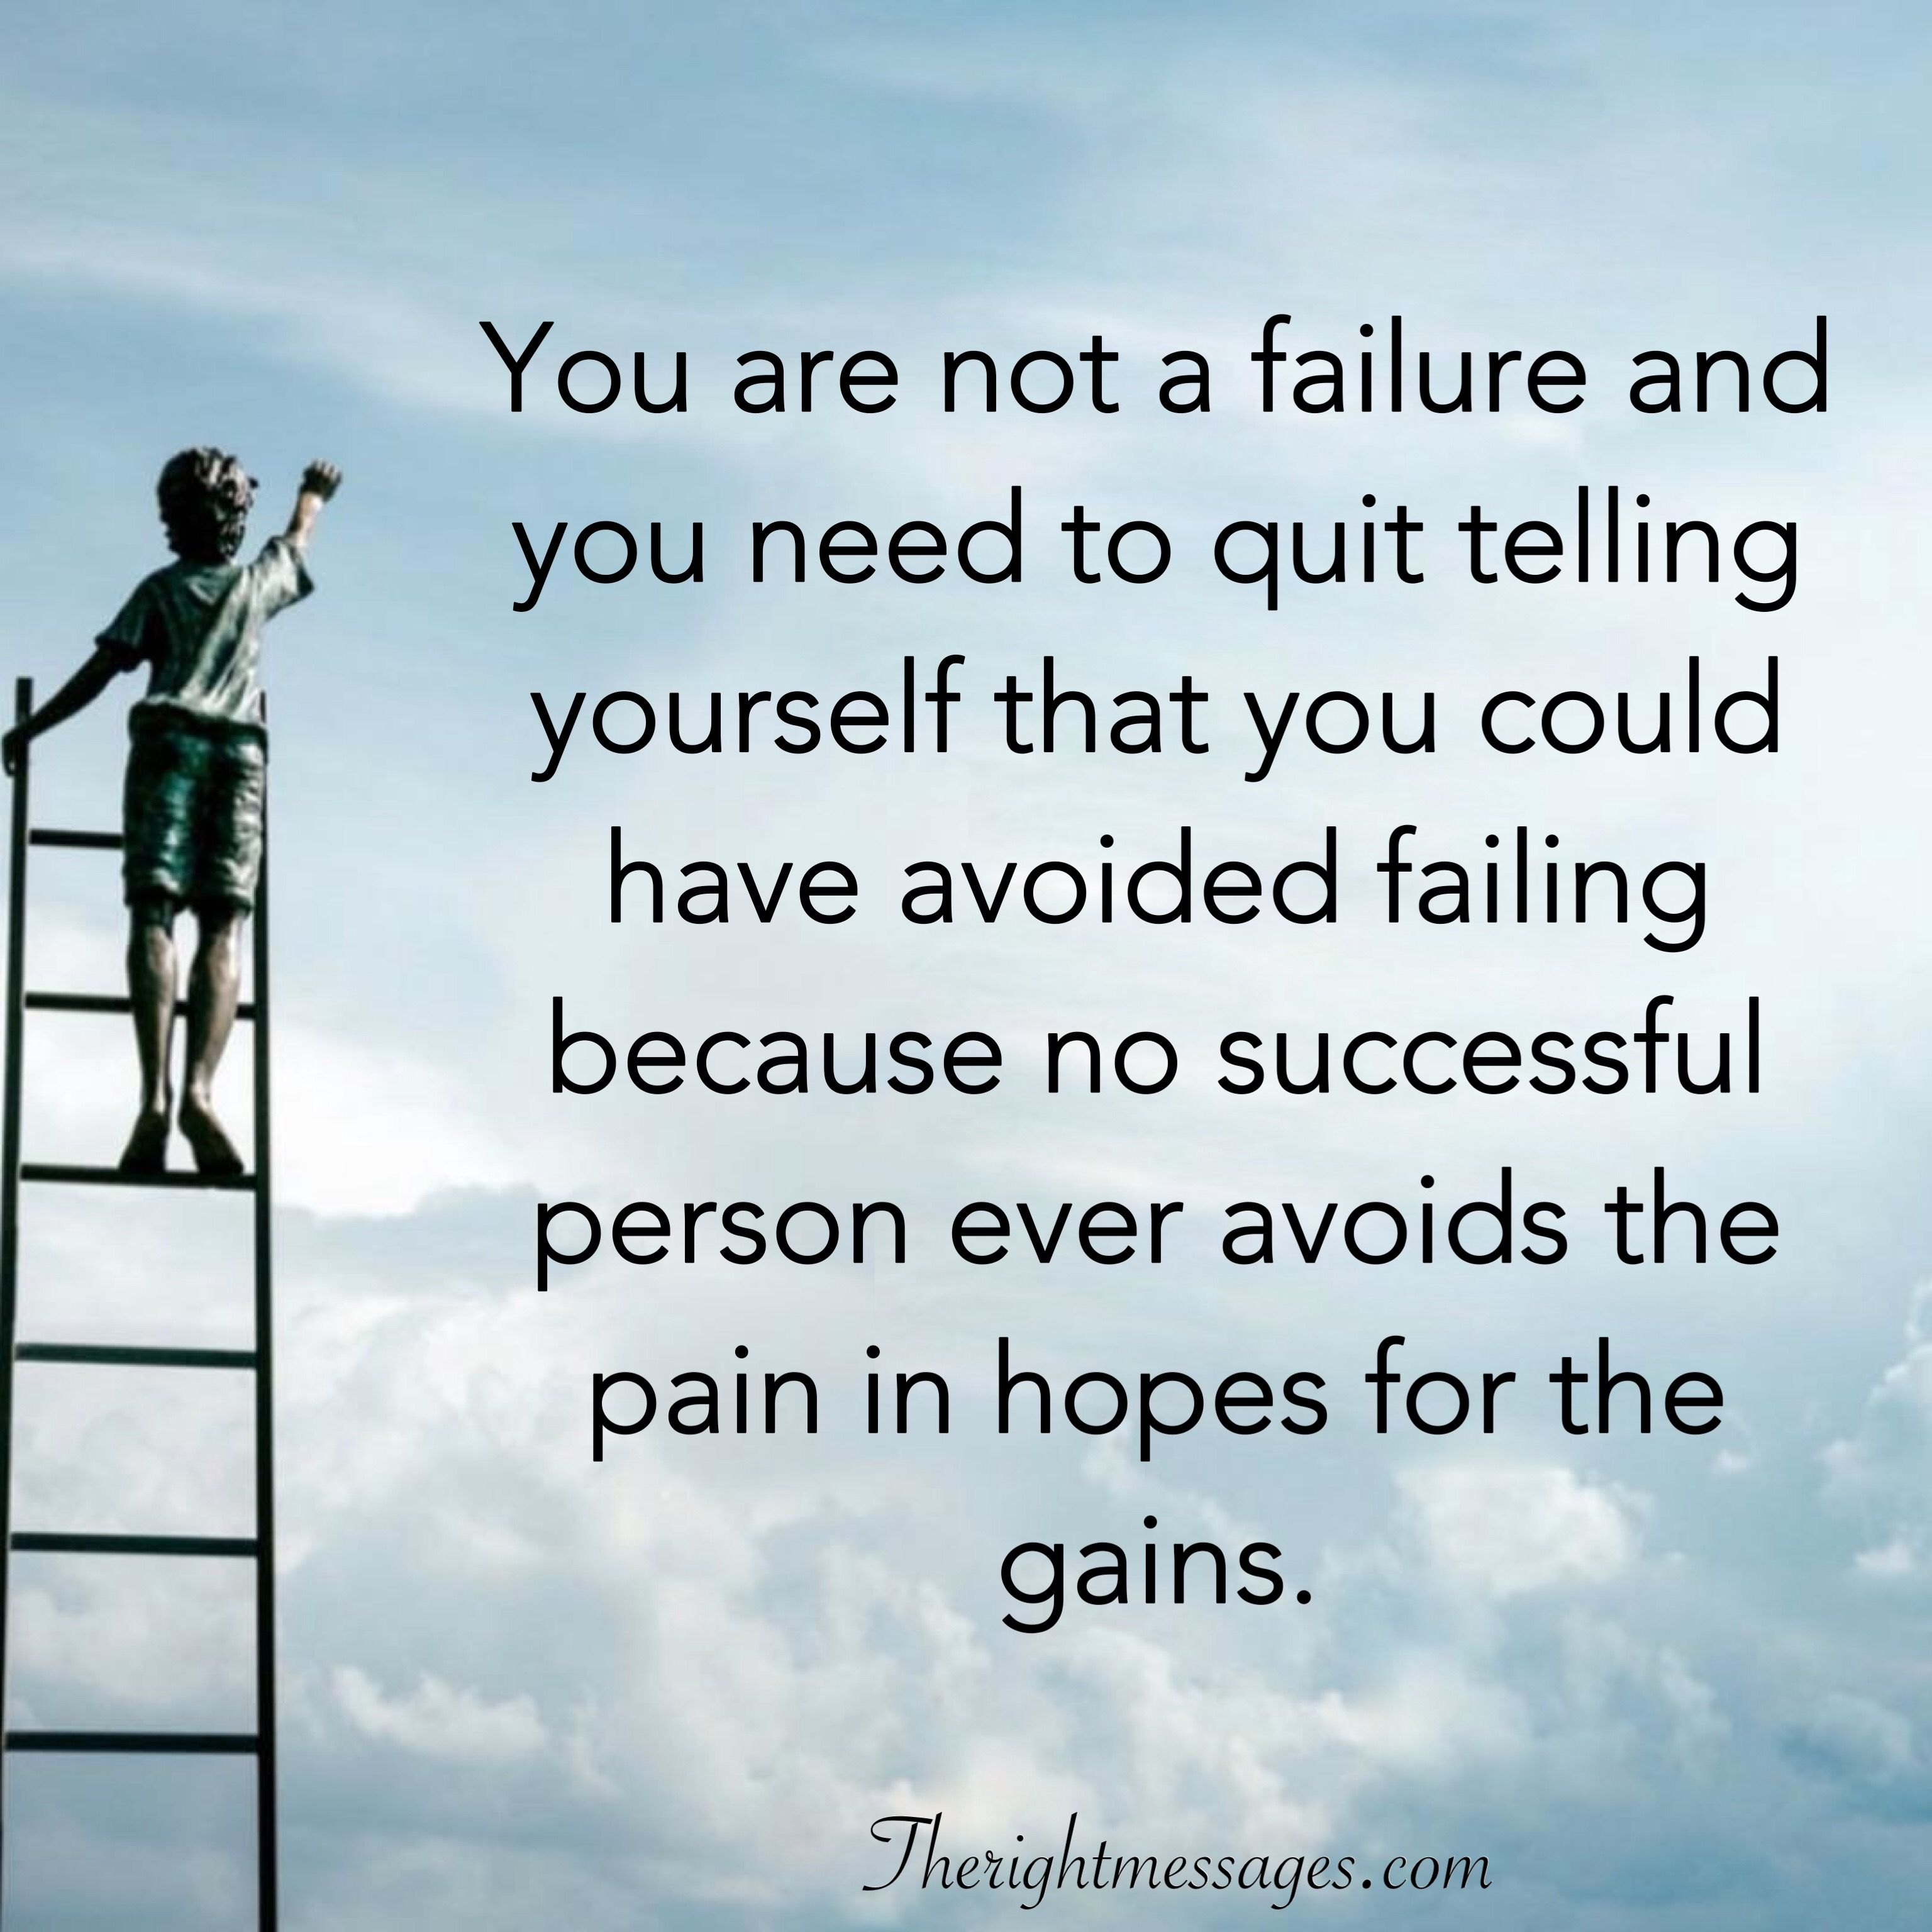 30 Inspirational Quotes About Failure The Right Messages Failure Quotes Inspirational Quotes About Failure Failure Quotes Motivation